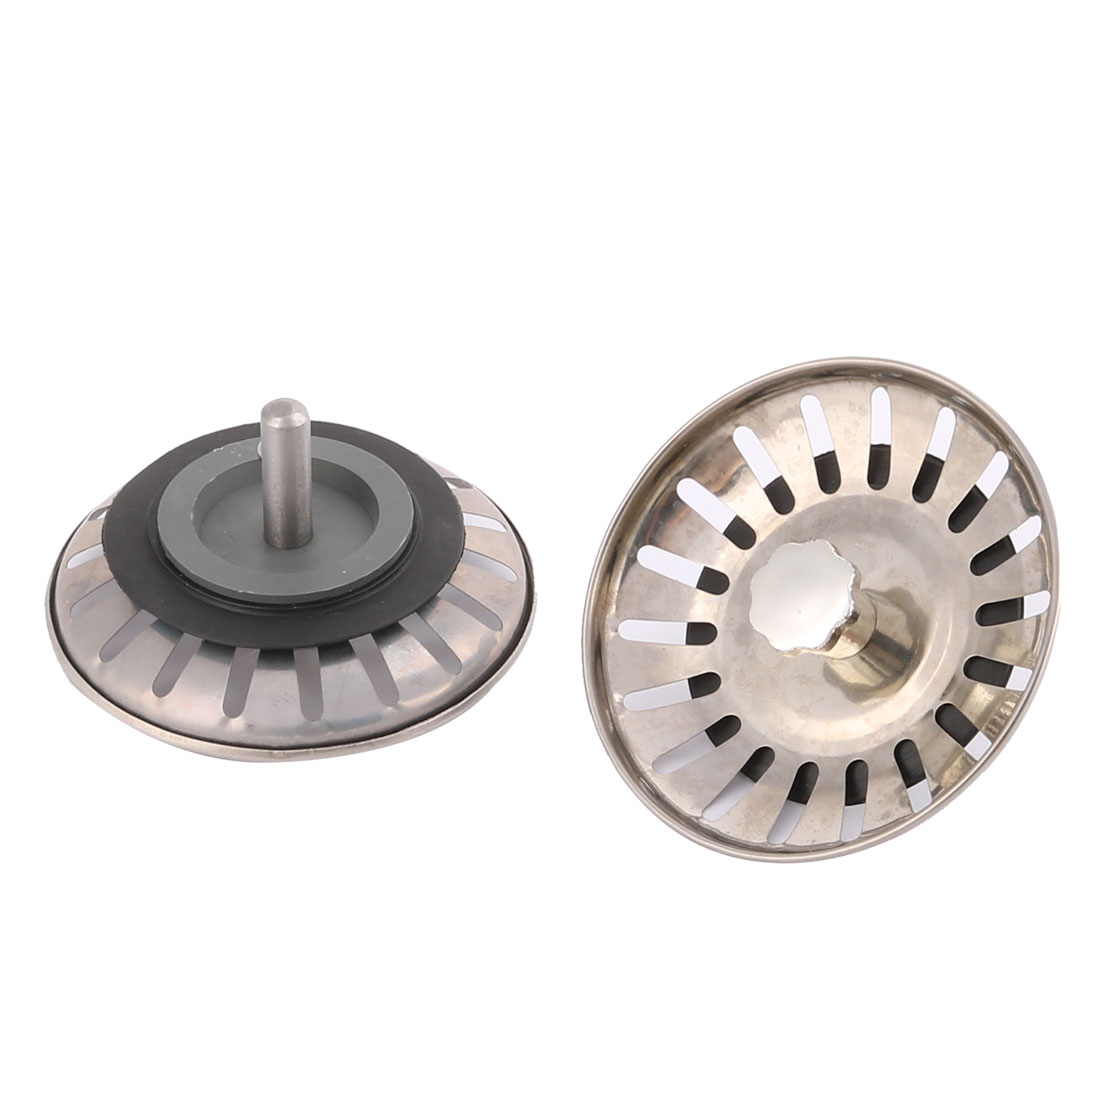 Metal Sink Strainers Kitchen Prevents Waste Stopper 2pcs